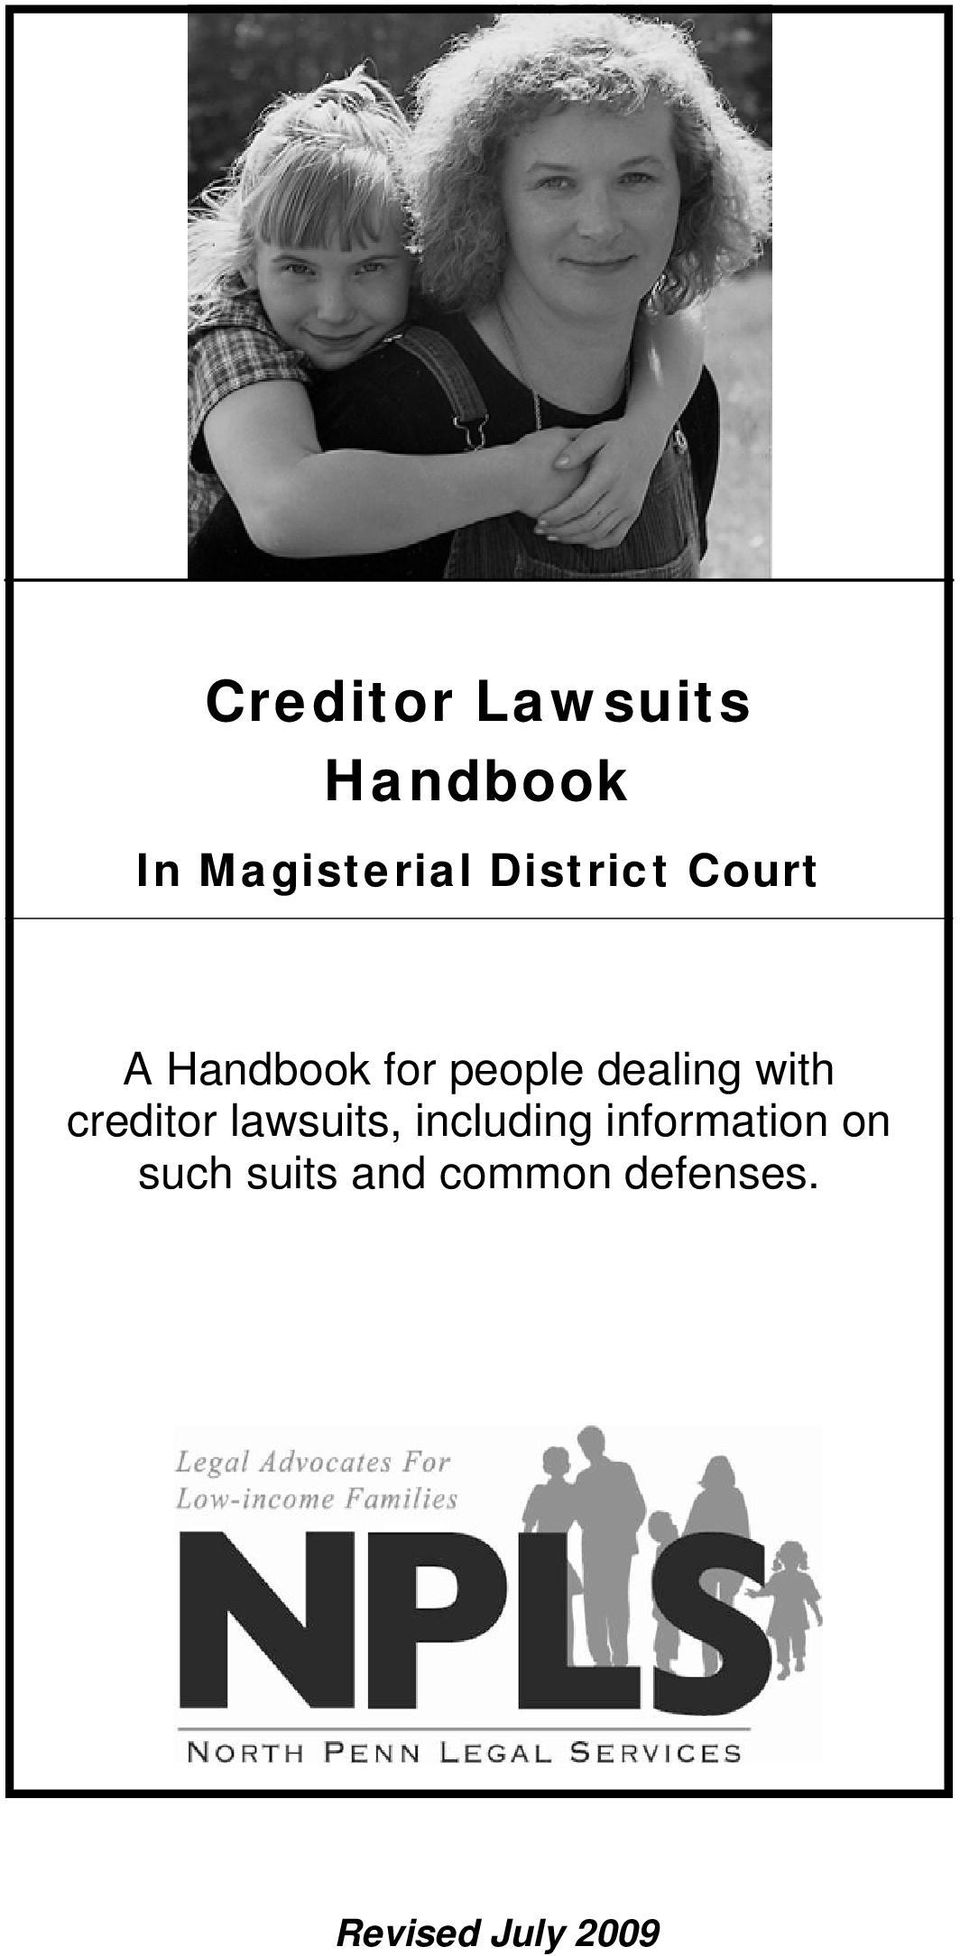 with creditor lawsuits, including information